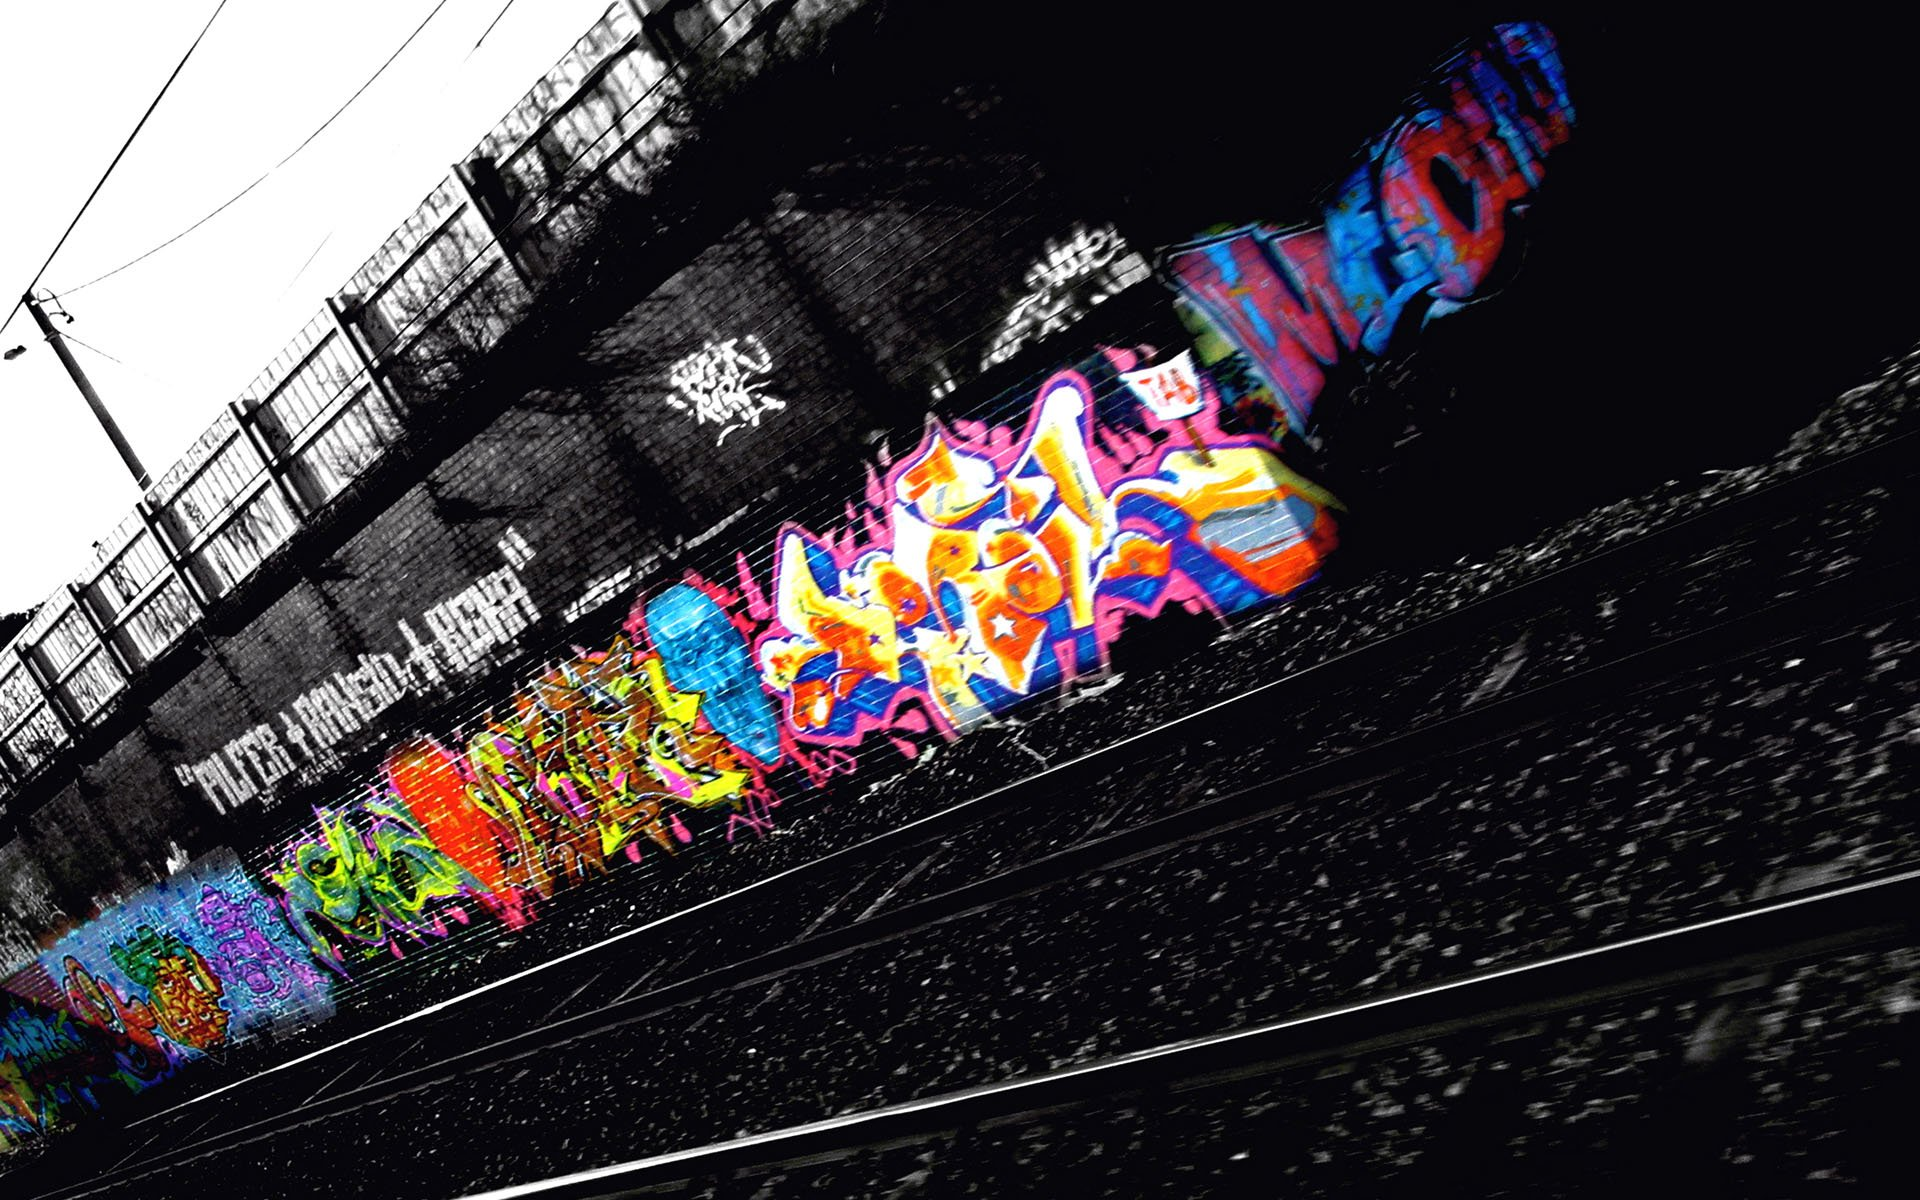 Wallpaper Tembok Hd 329 Graffiti Hd Wallpapers Background Images Wallpaper Abyss